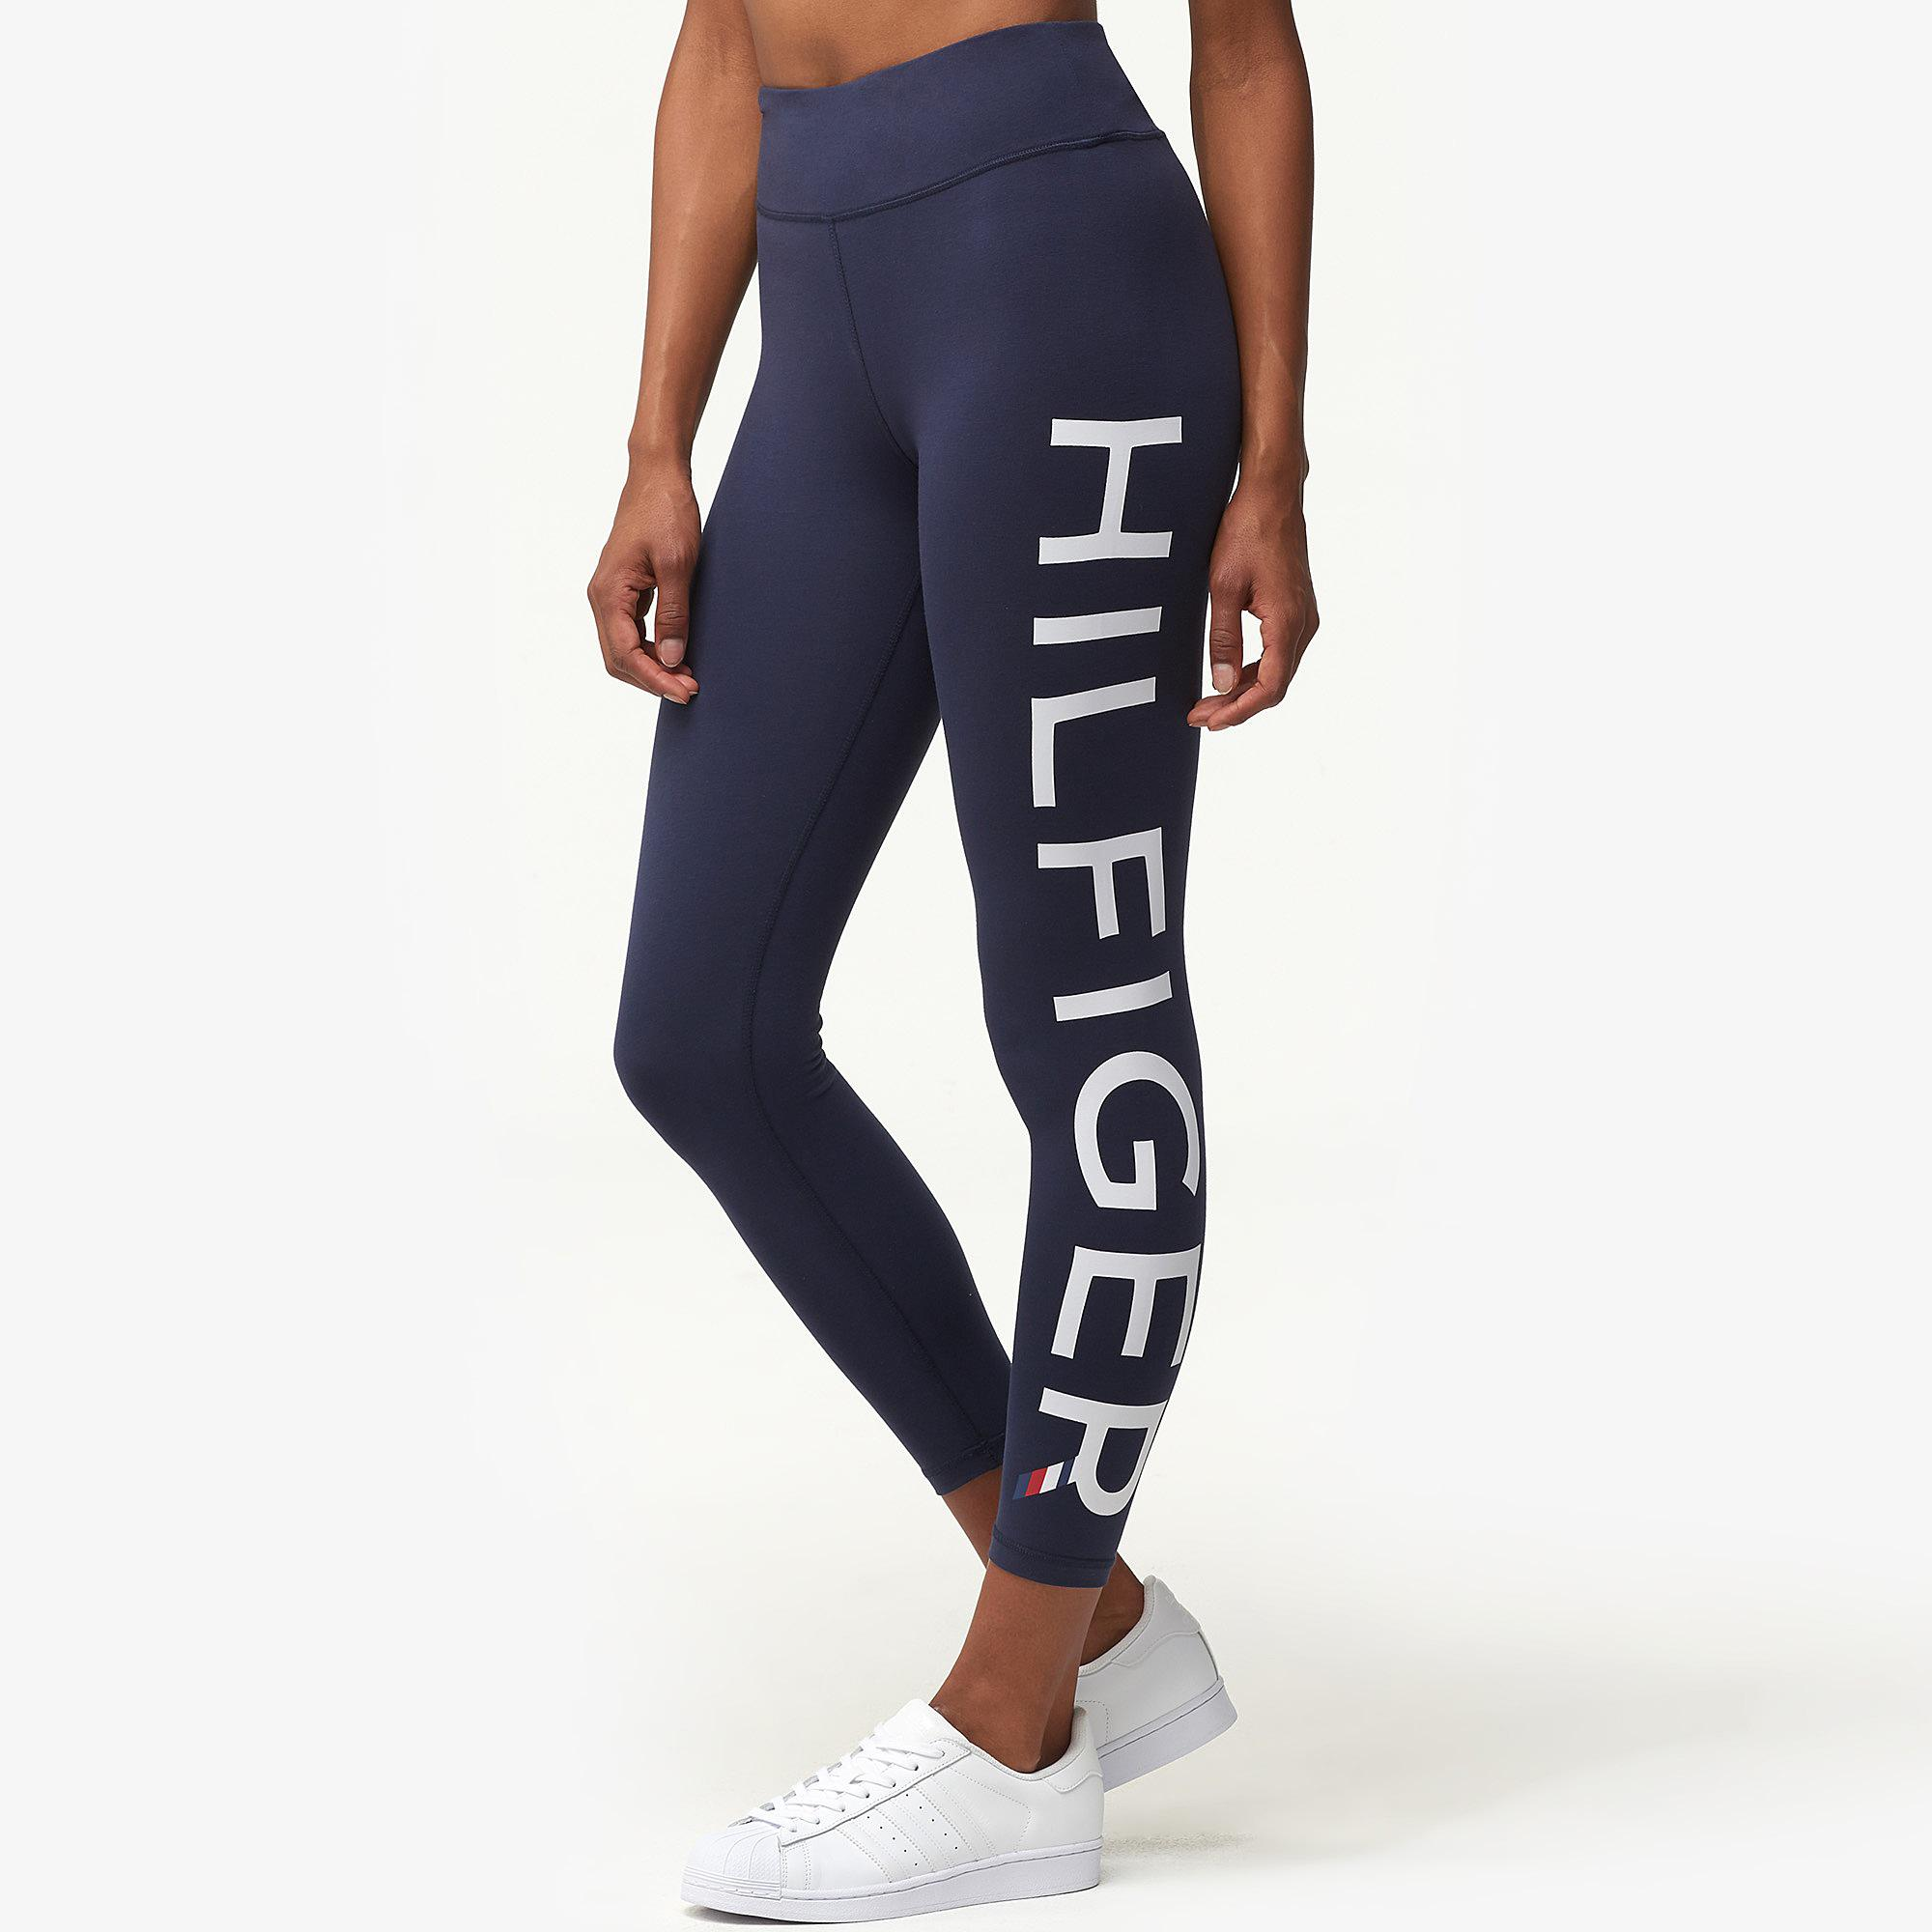 07a412d9 Tommy Hilfiger High Rise Logo Leggings in Blue - Lyst